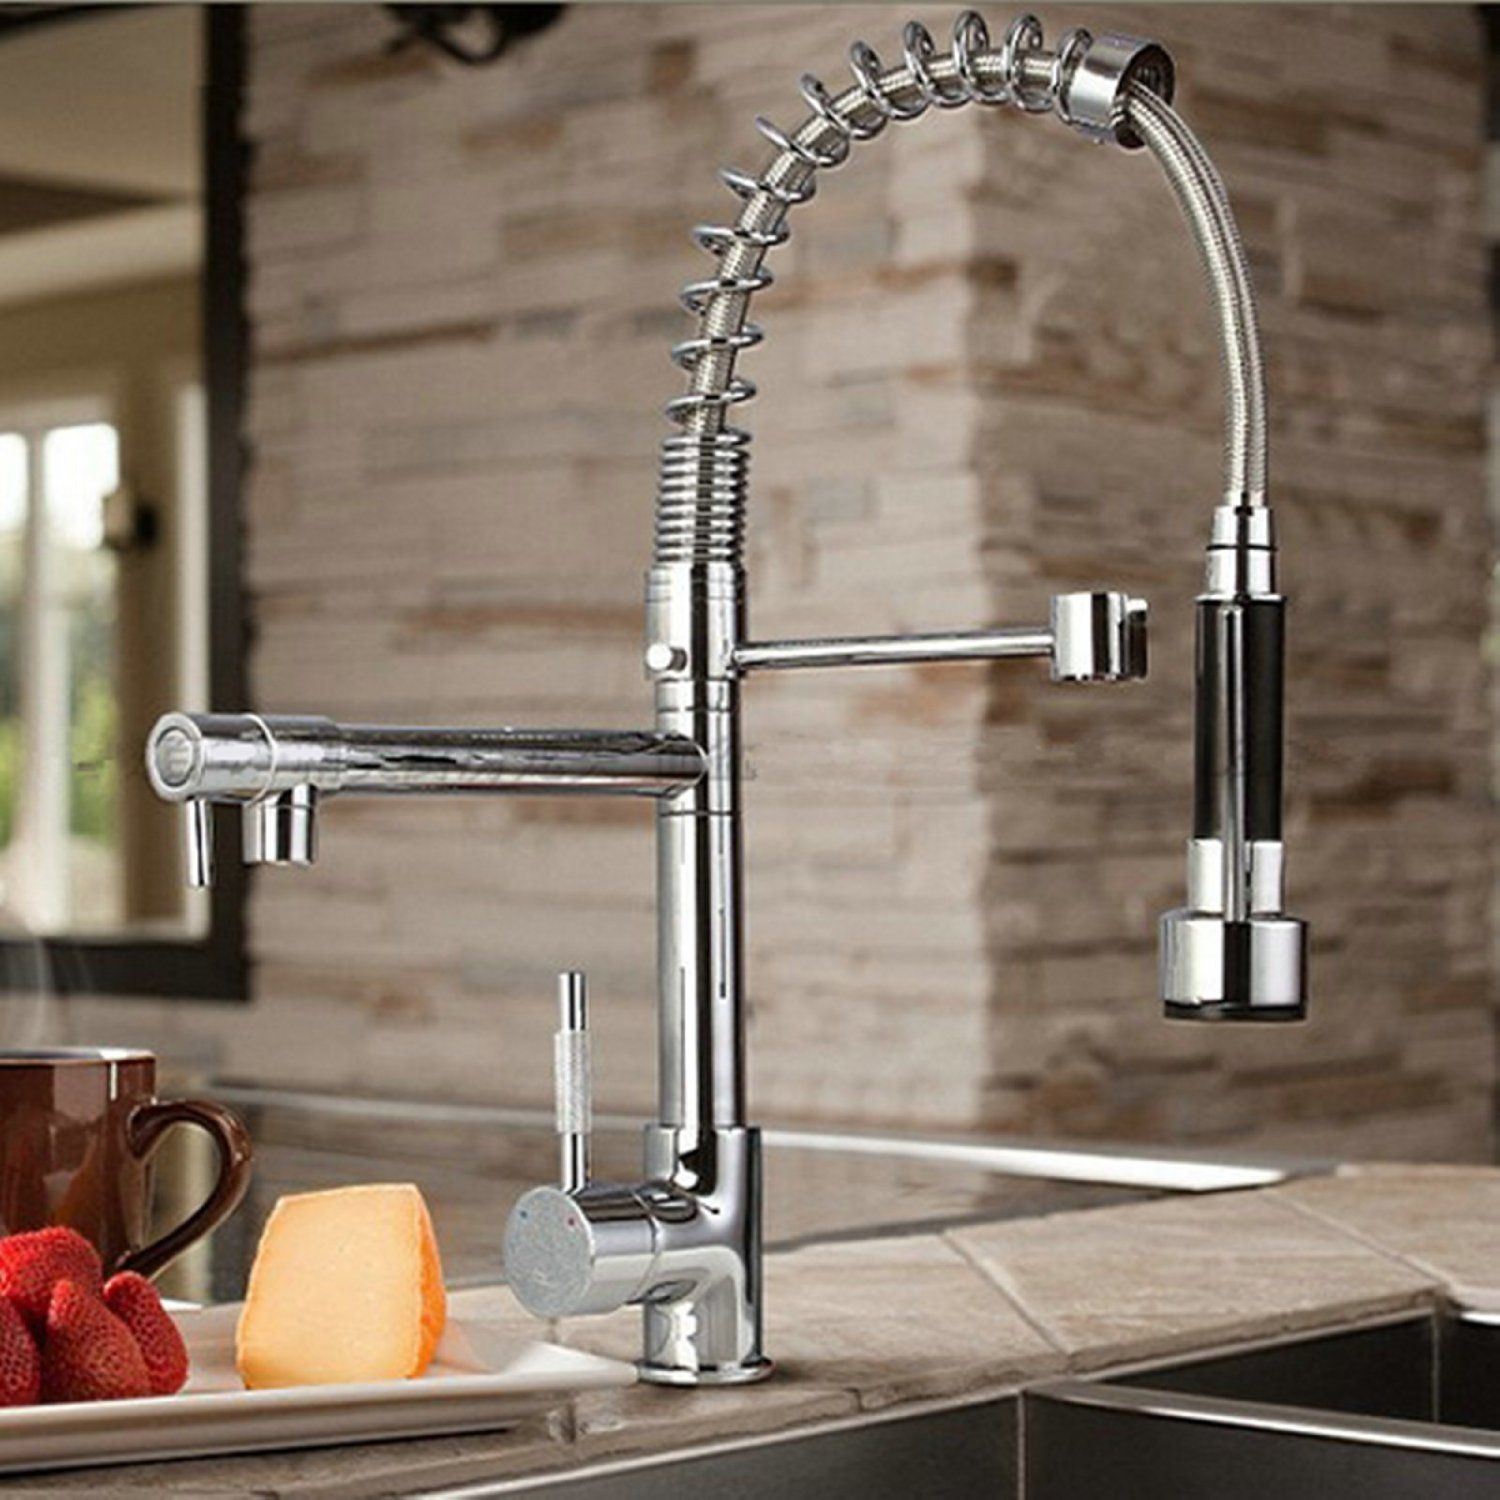 Modern Kitchen Sink Faucets: BYB®- Chrome Modern Designer Single Handle Pull Out Spray